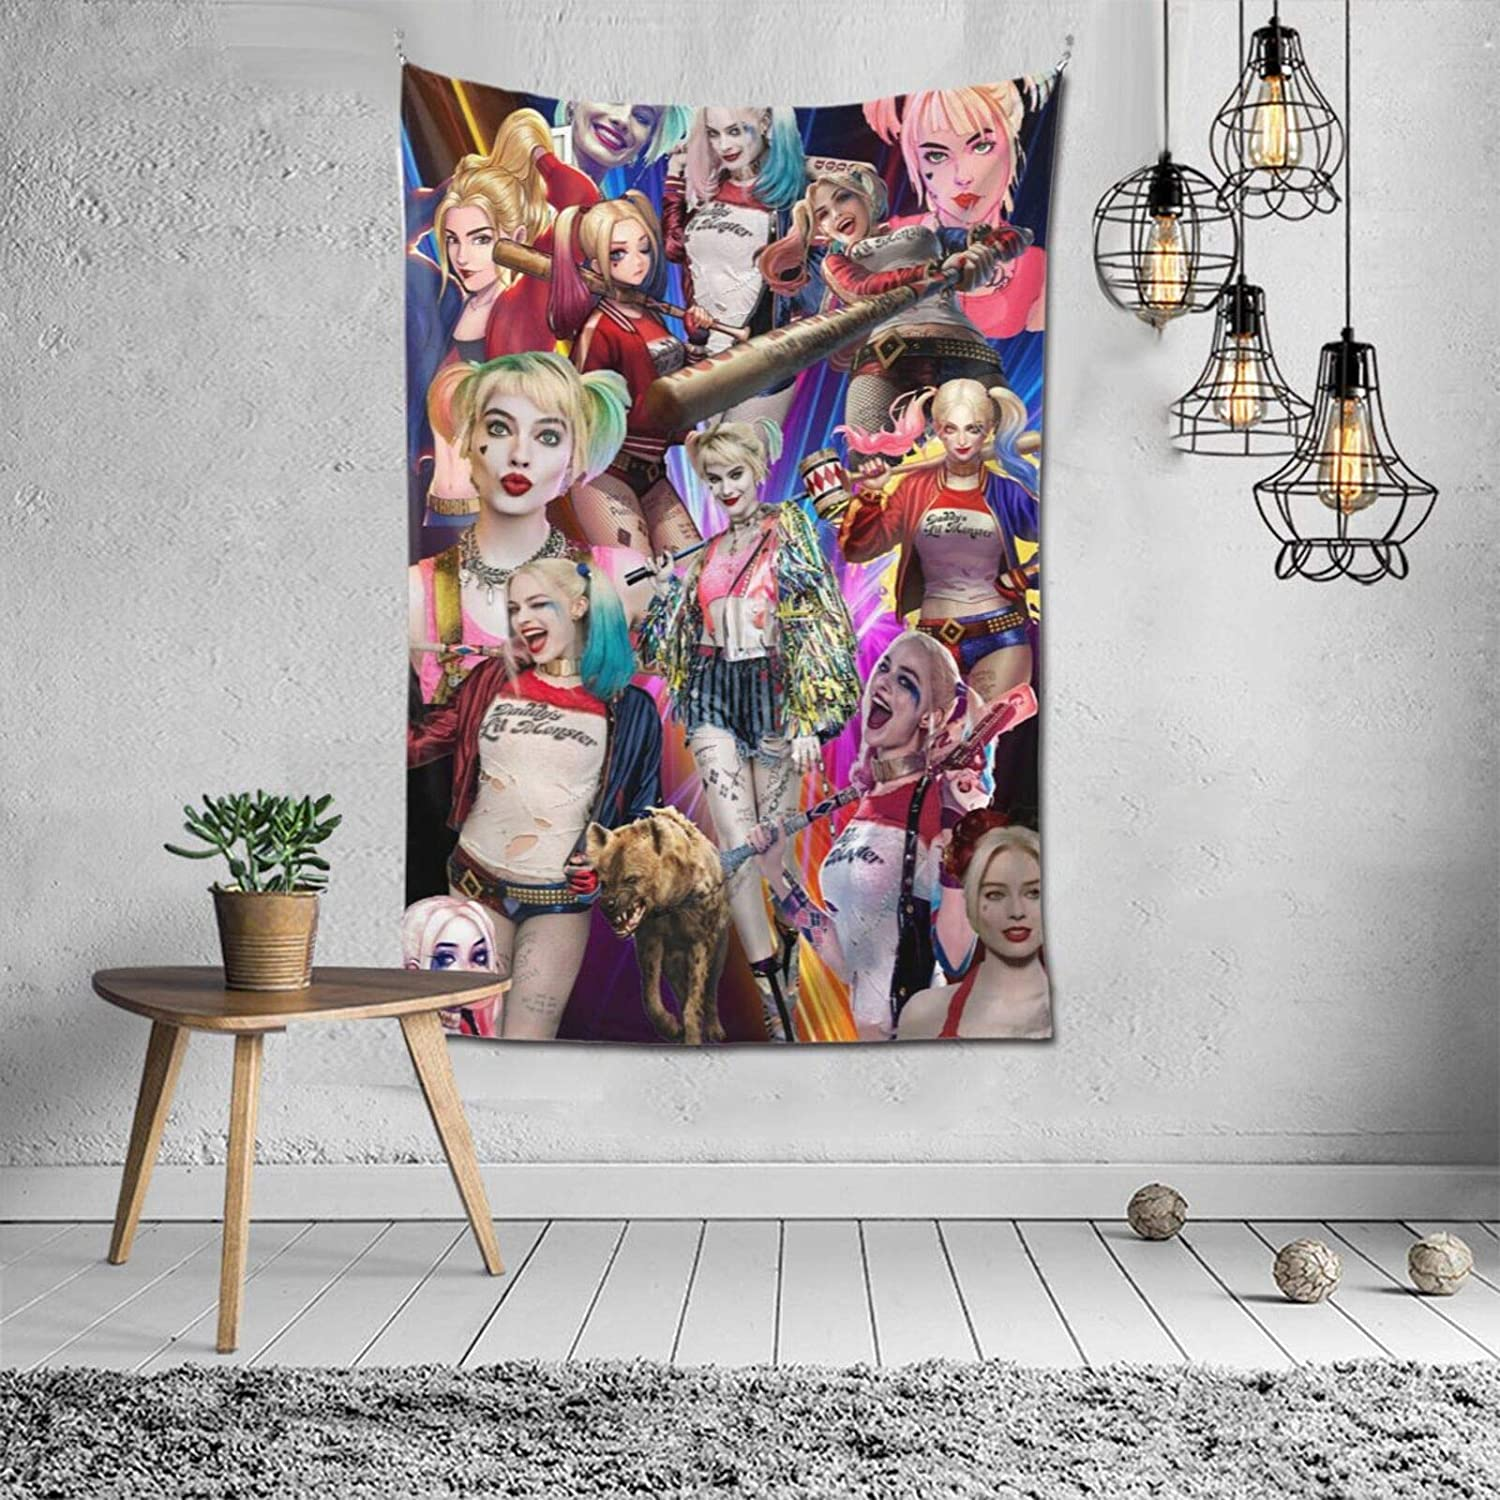 ANGOGO Harley-Quinn Wall Art Tapestry Hanging for Bedroom Living Room Backdrop Party Dormitory Bed Decoration 60x40 Inch